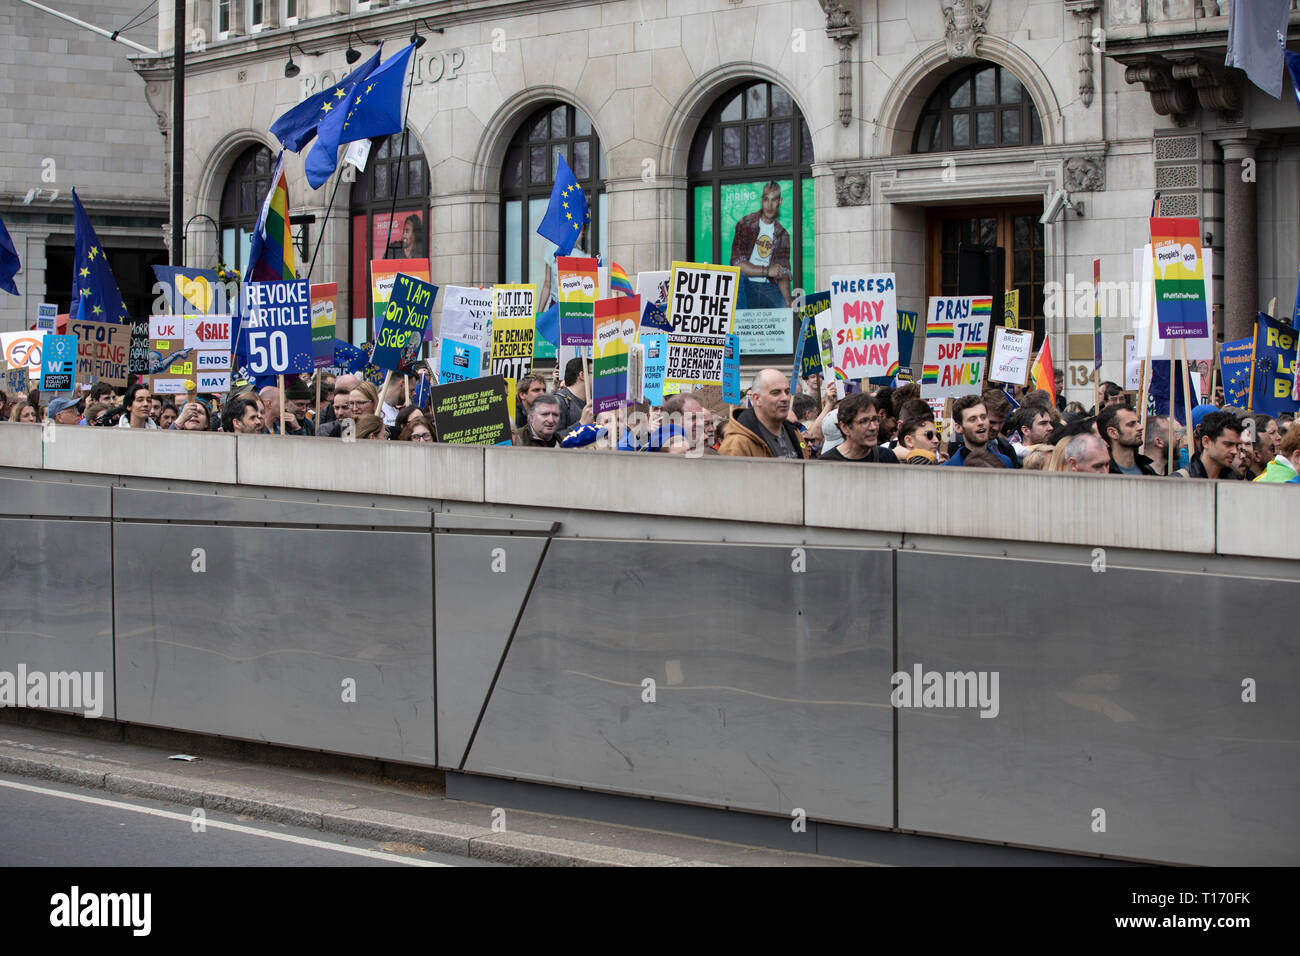 Marchers and placards, People's Vote March, London, England Stock Photo